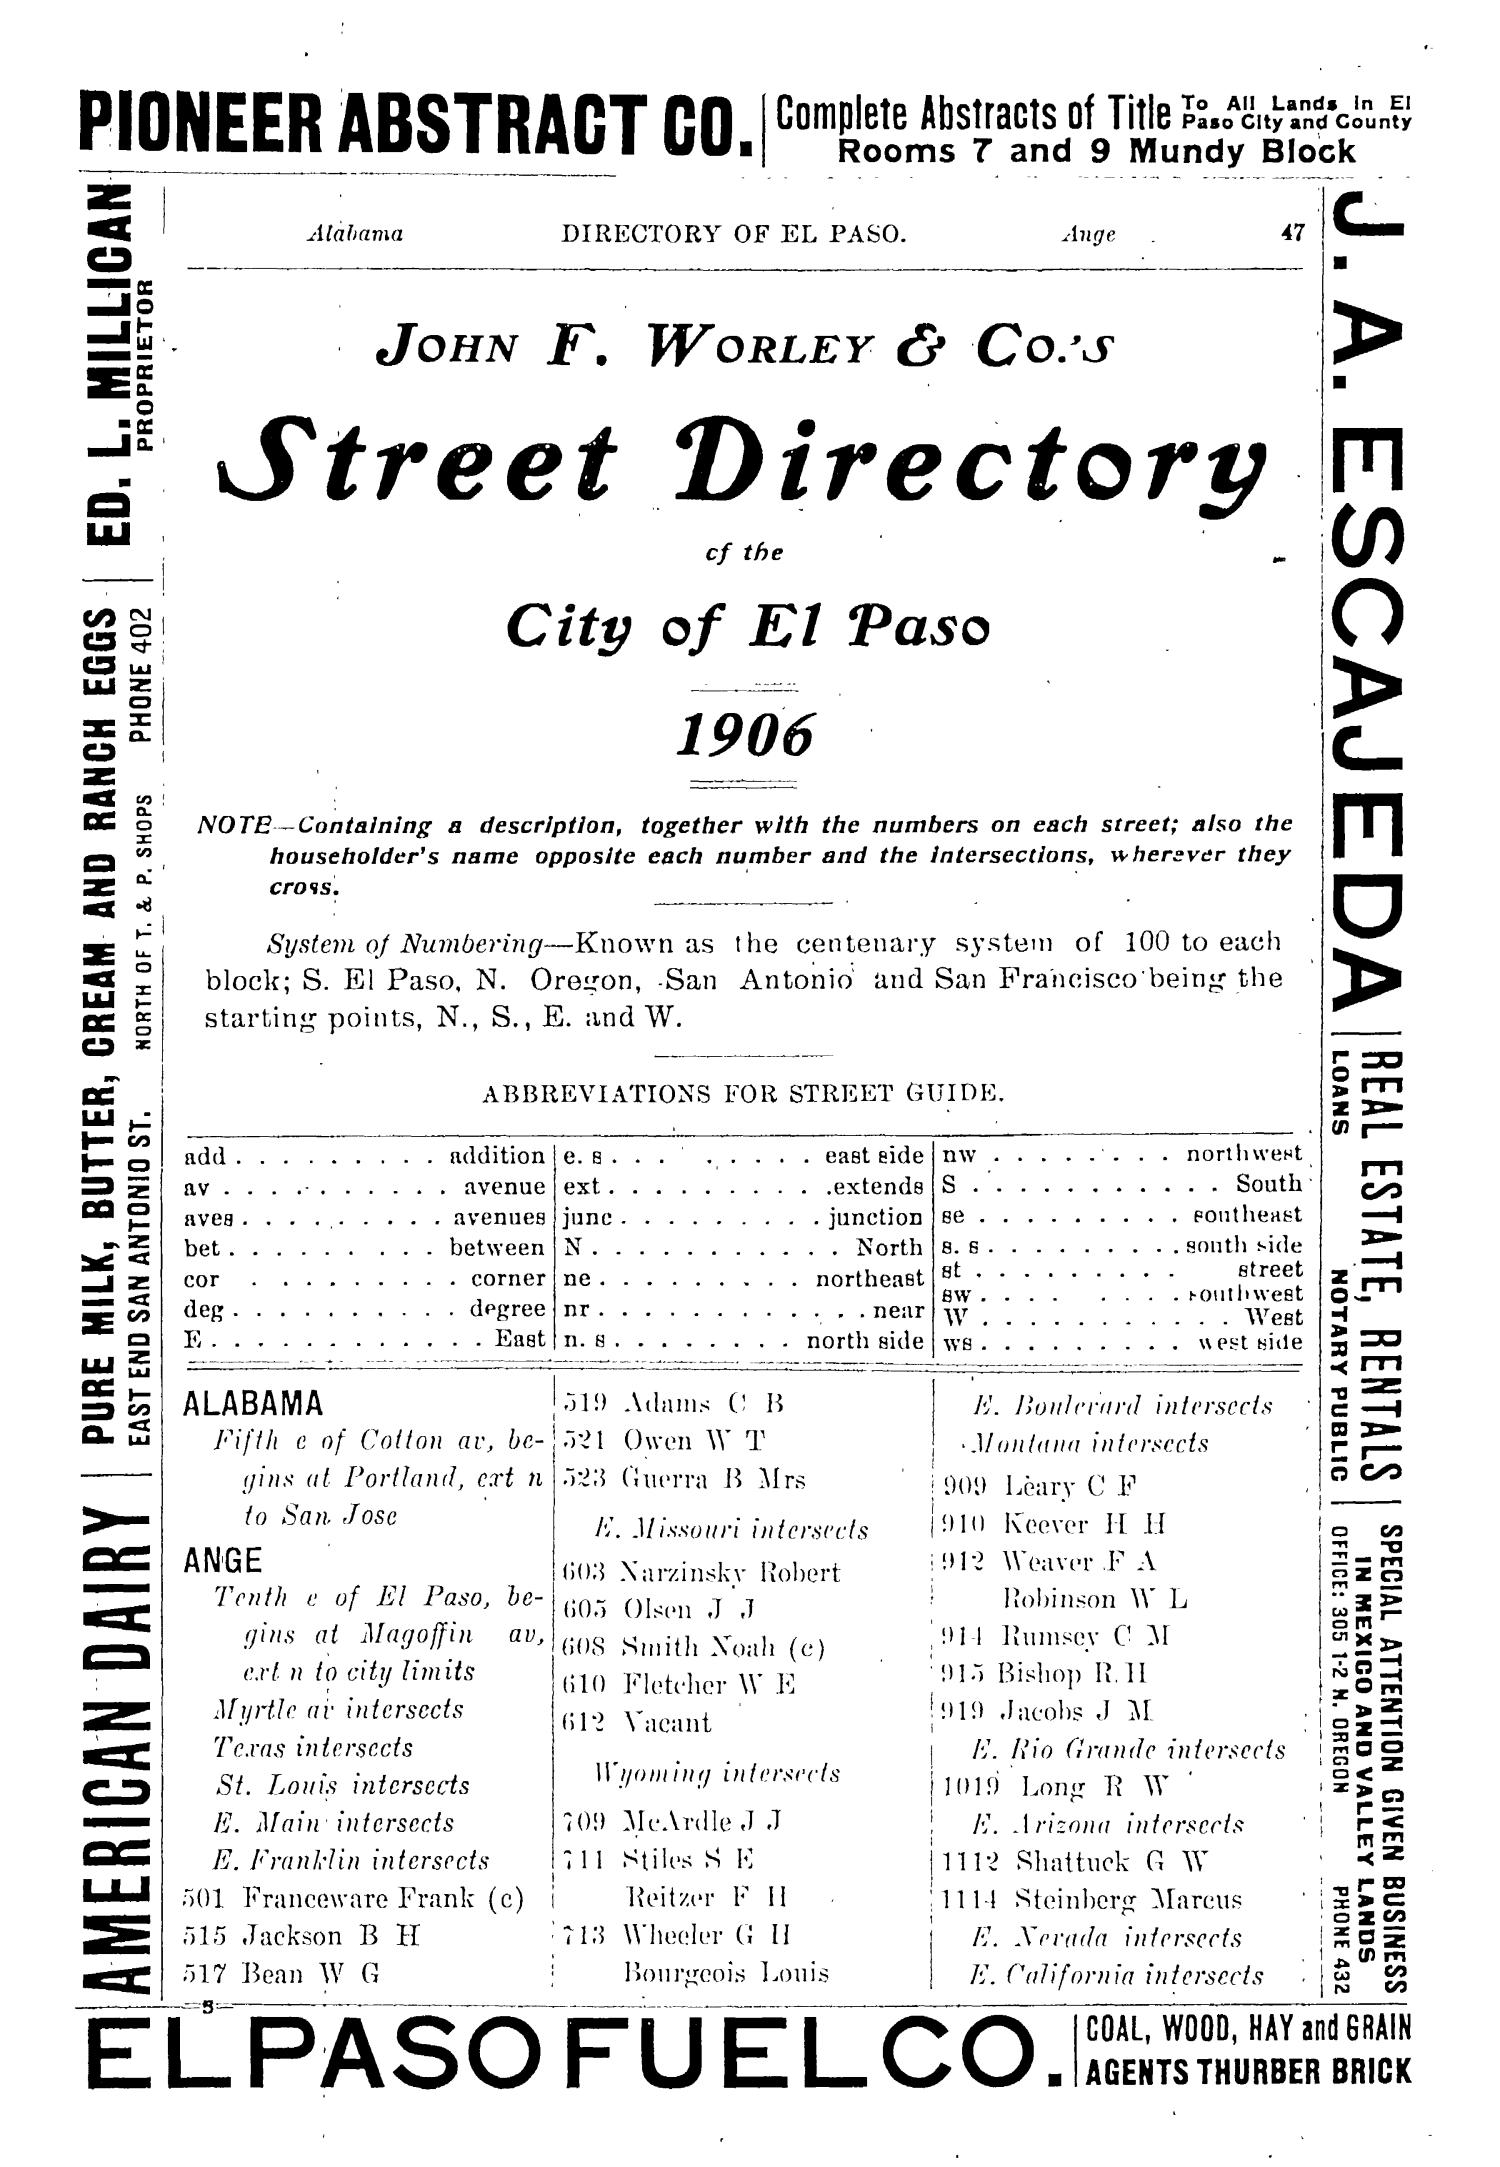 John F. Worley & Co.'s El Paso Directory for 1906                                                                                                      47